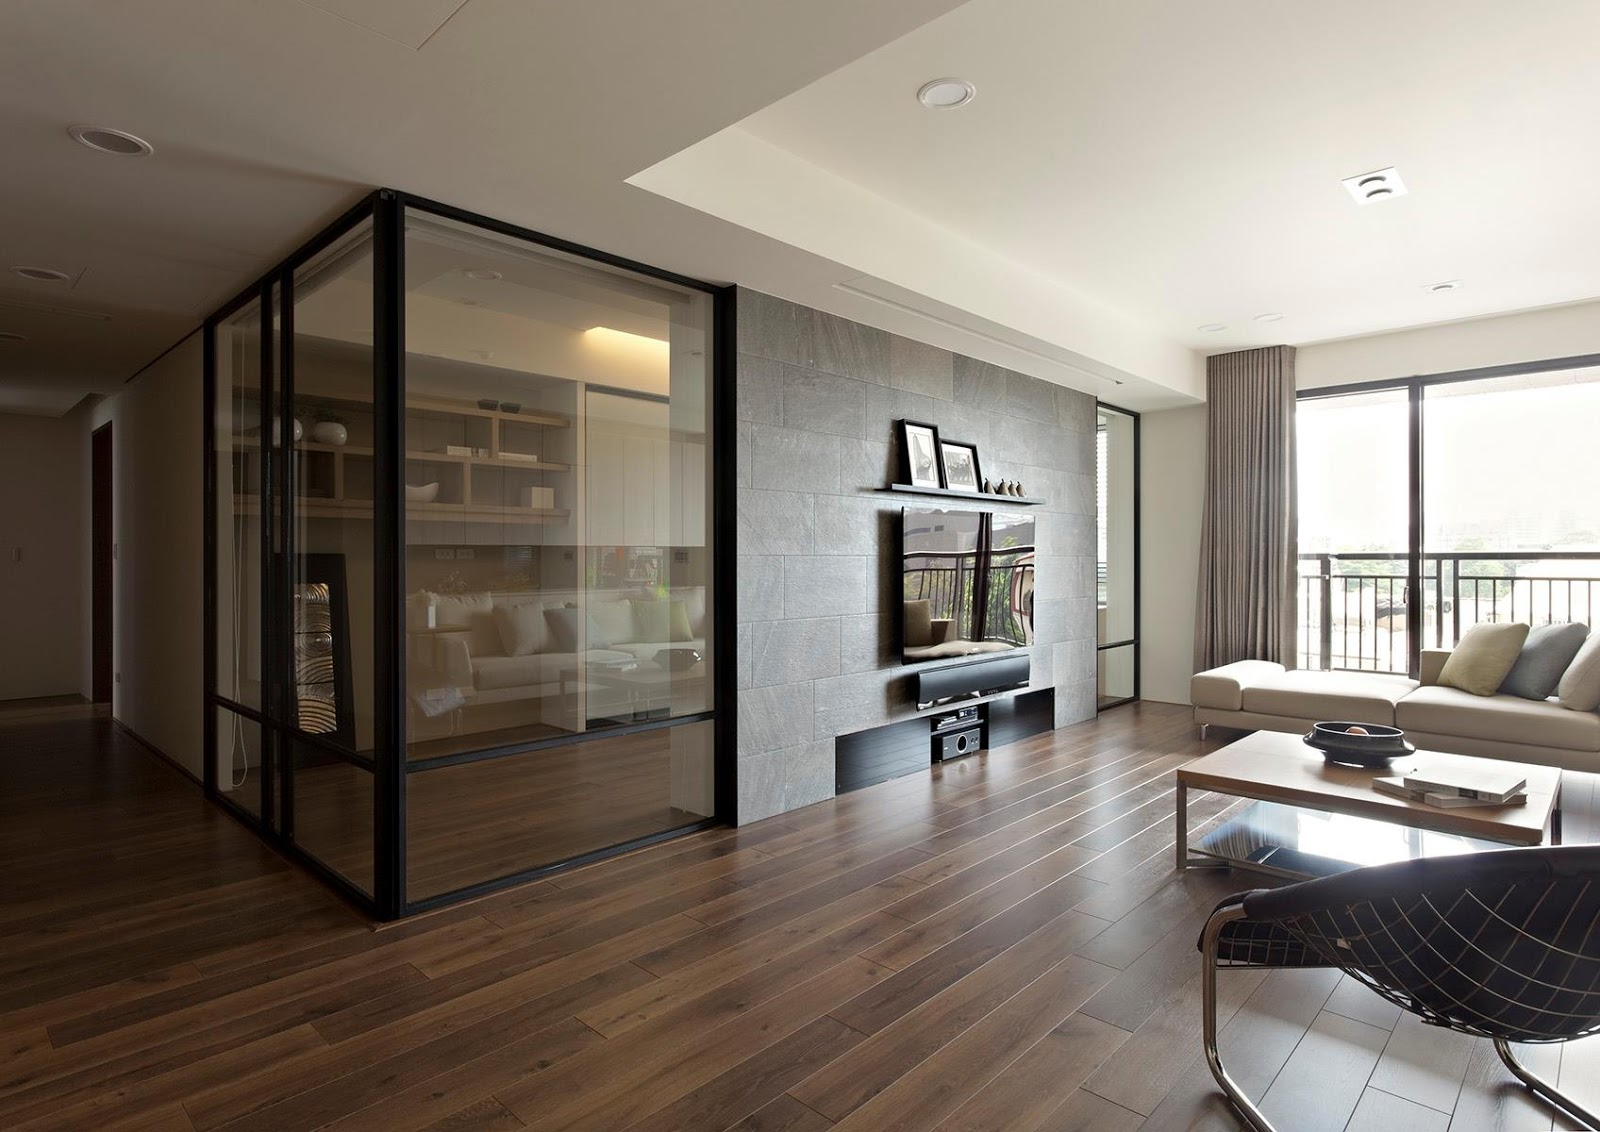 Modern interior glass doors -  Door Designs For Living Room Apartment With A Retractable Interior Wall